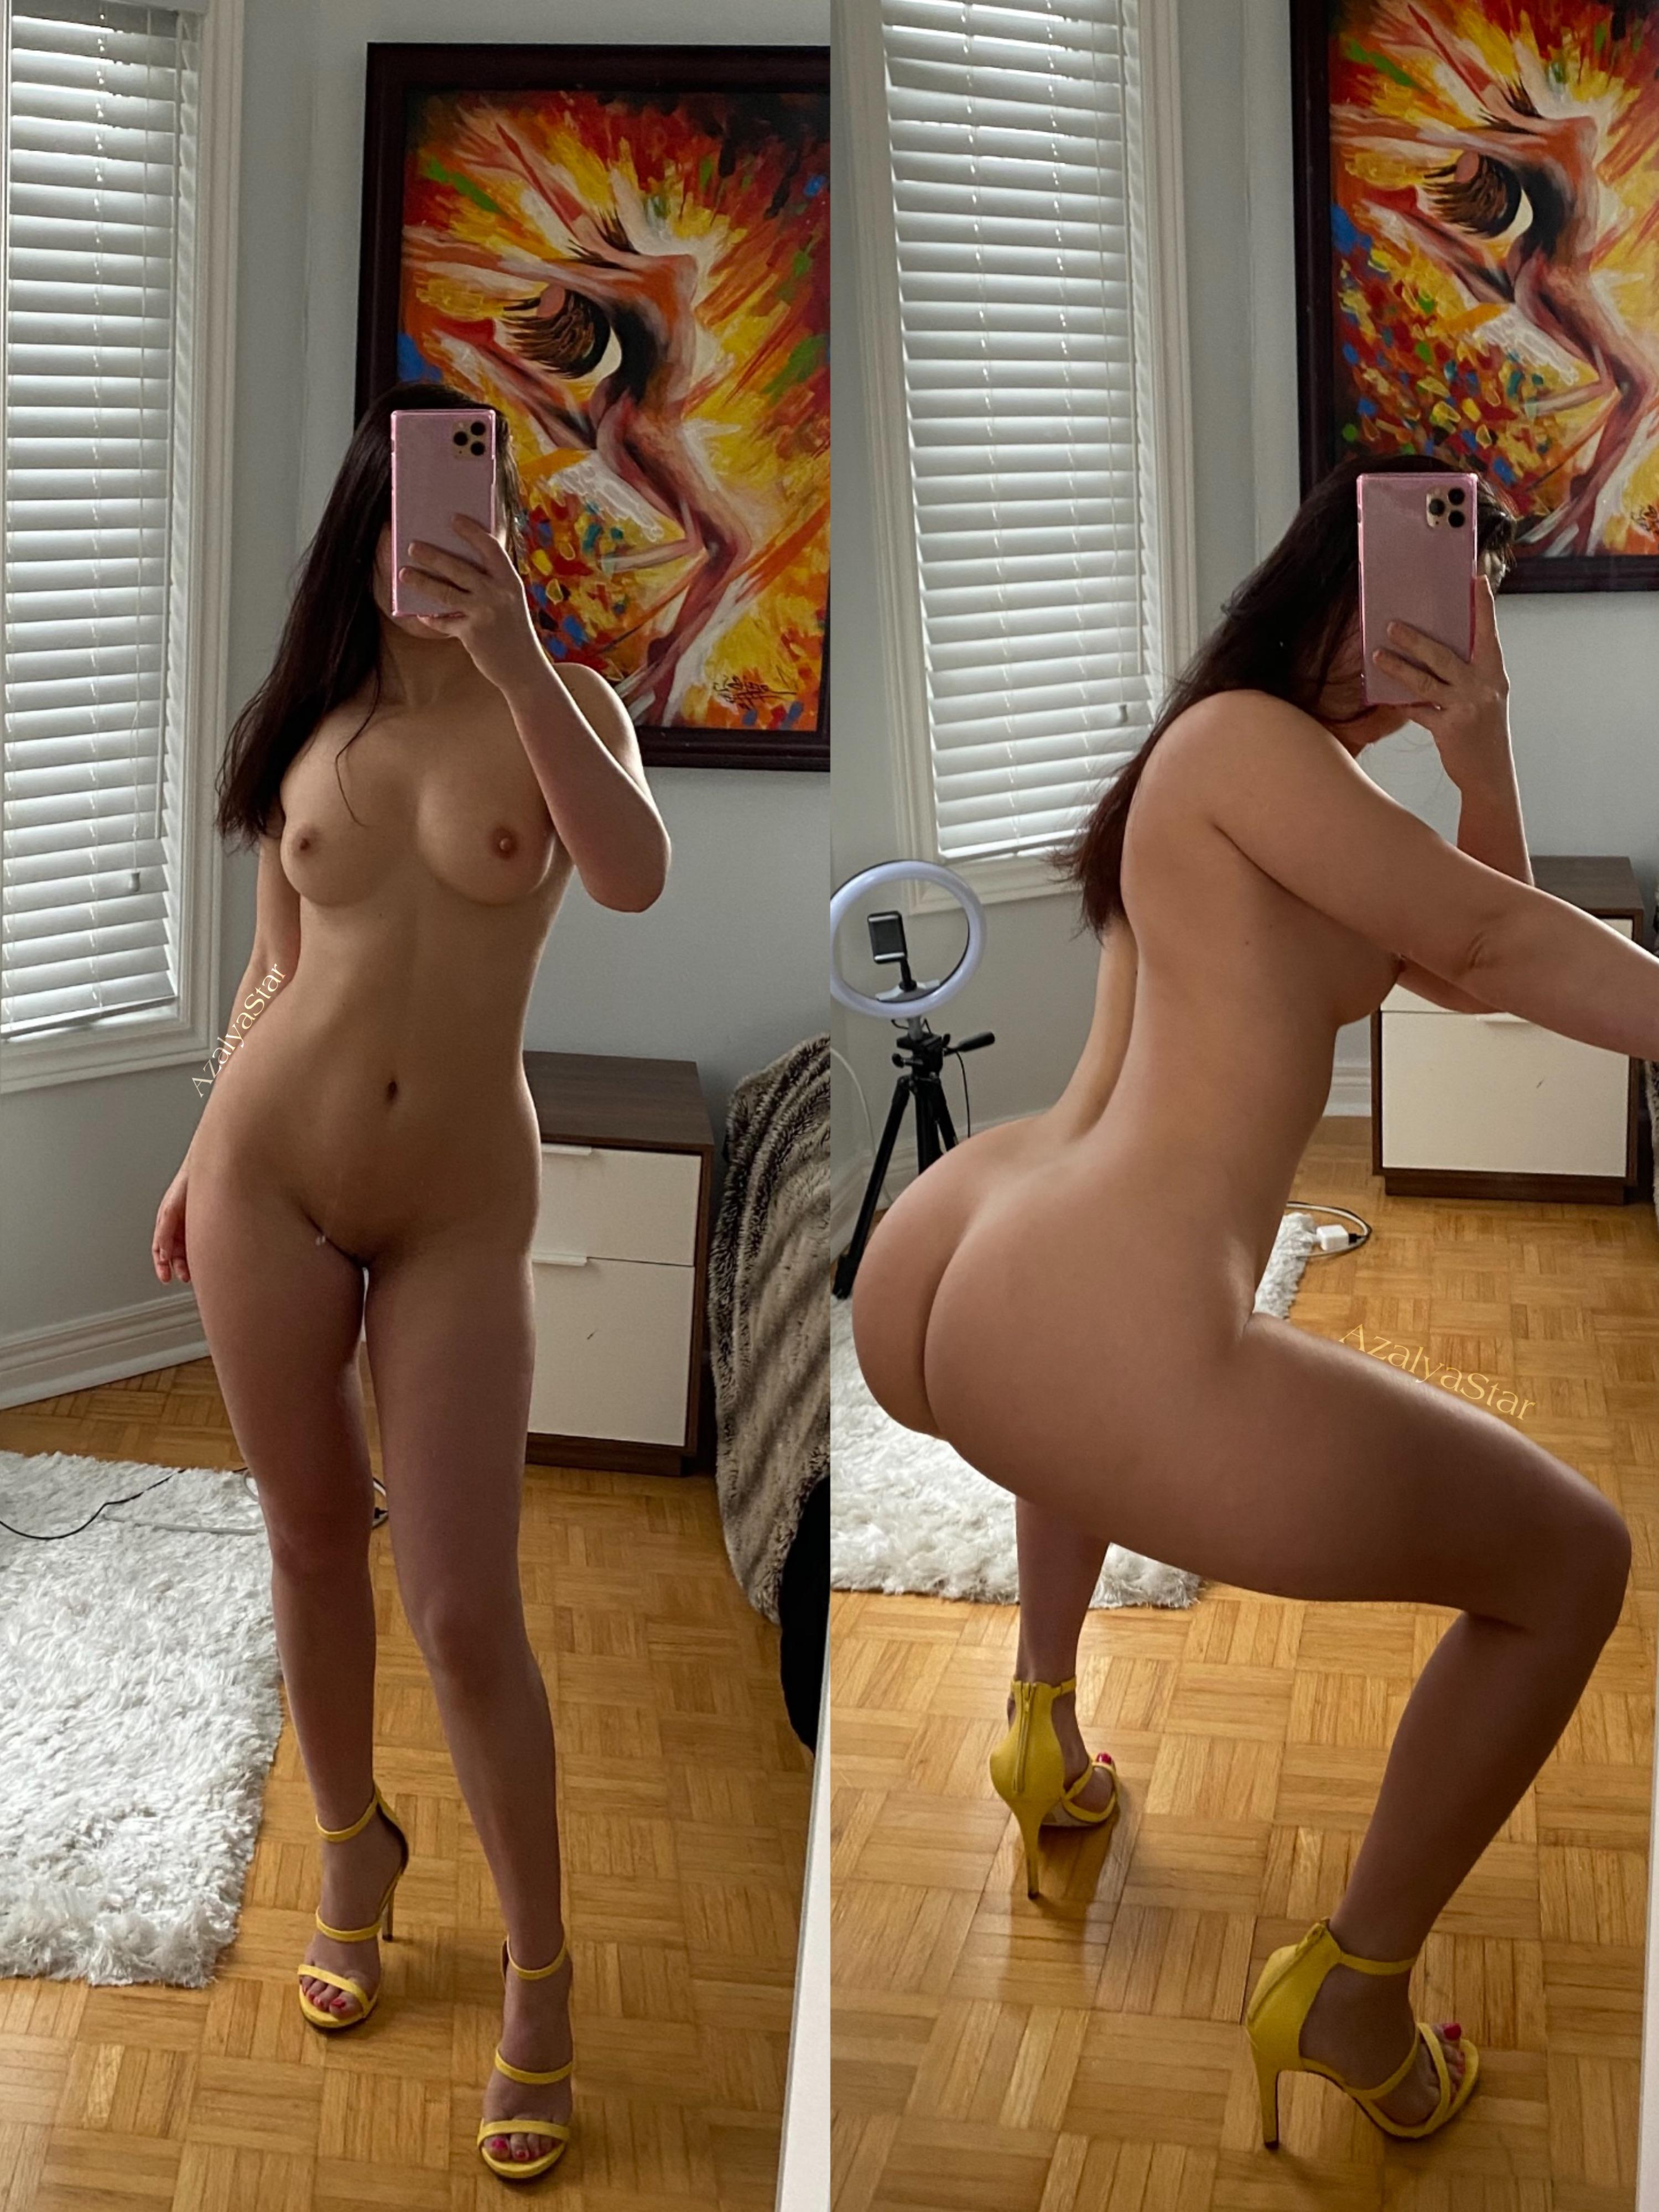 One of our naked asian pics called Ever fucked a petite Asian w a big ass?